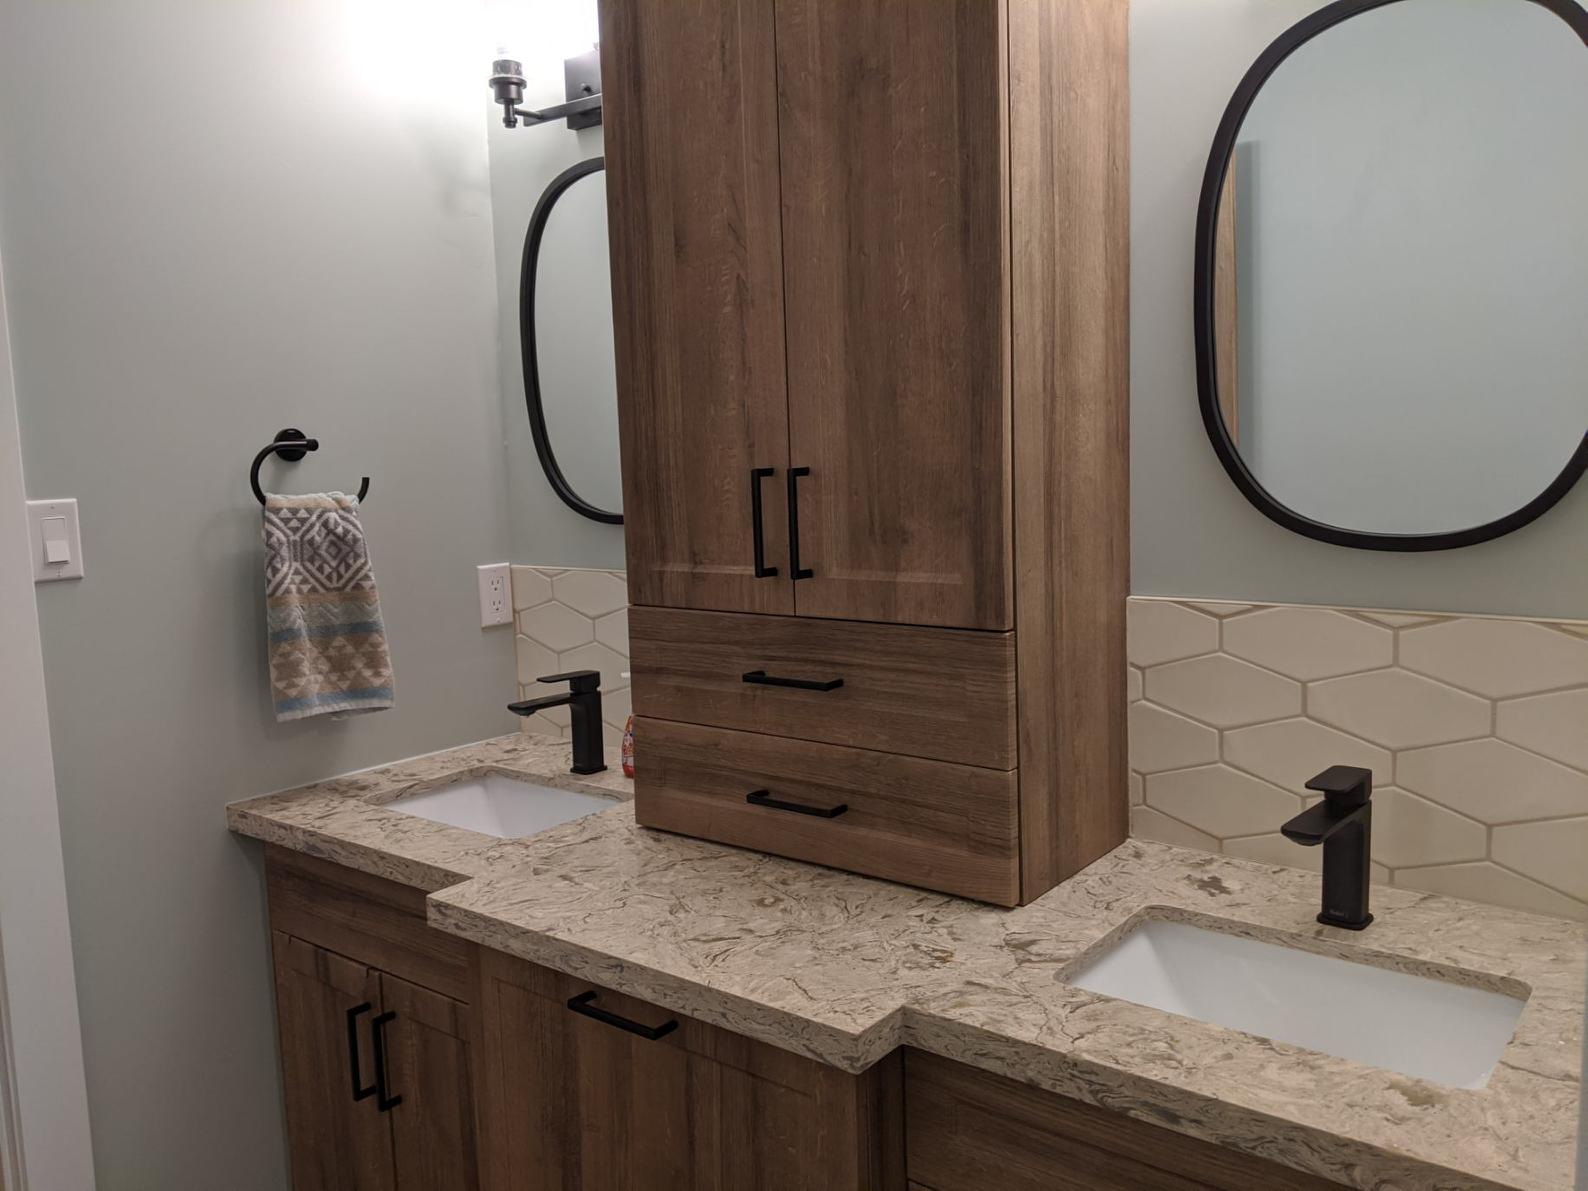 Double Vanity - After